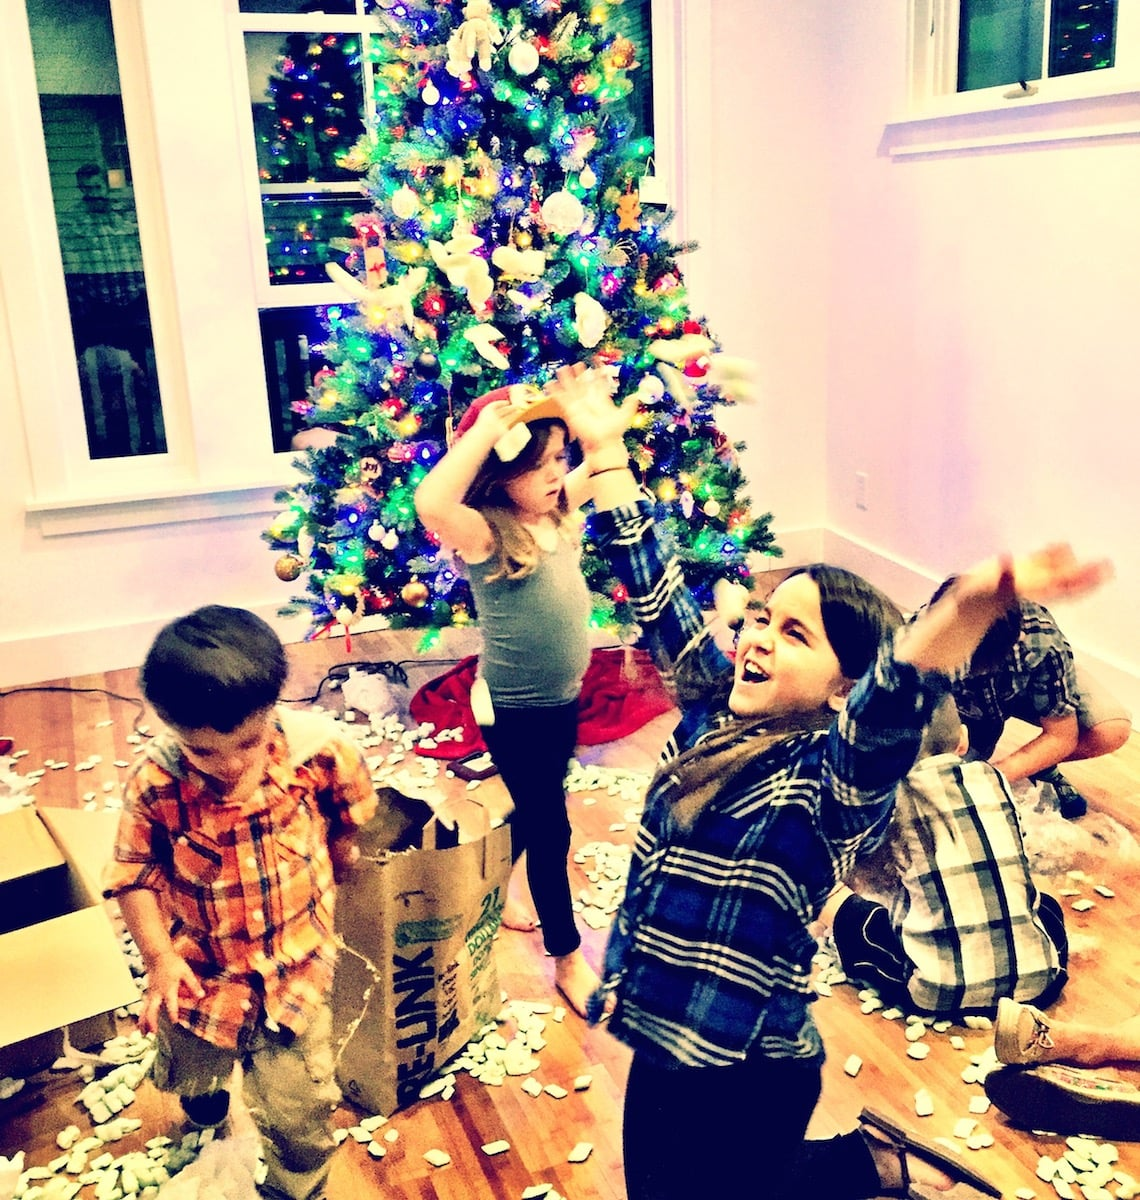 We let the kids decorate the tree. Lets just say that the density of ornaments was heavier at the bottom of the tree.